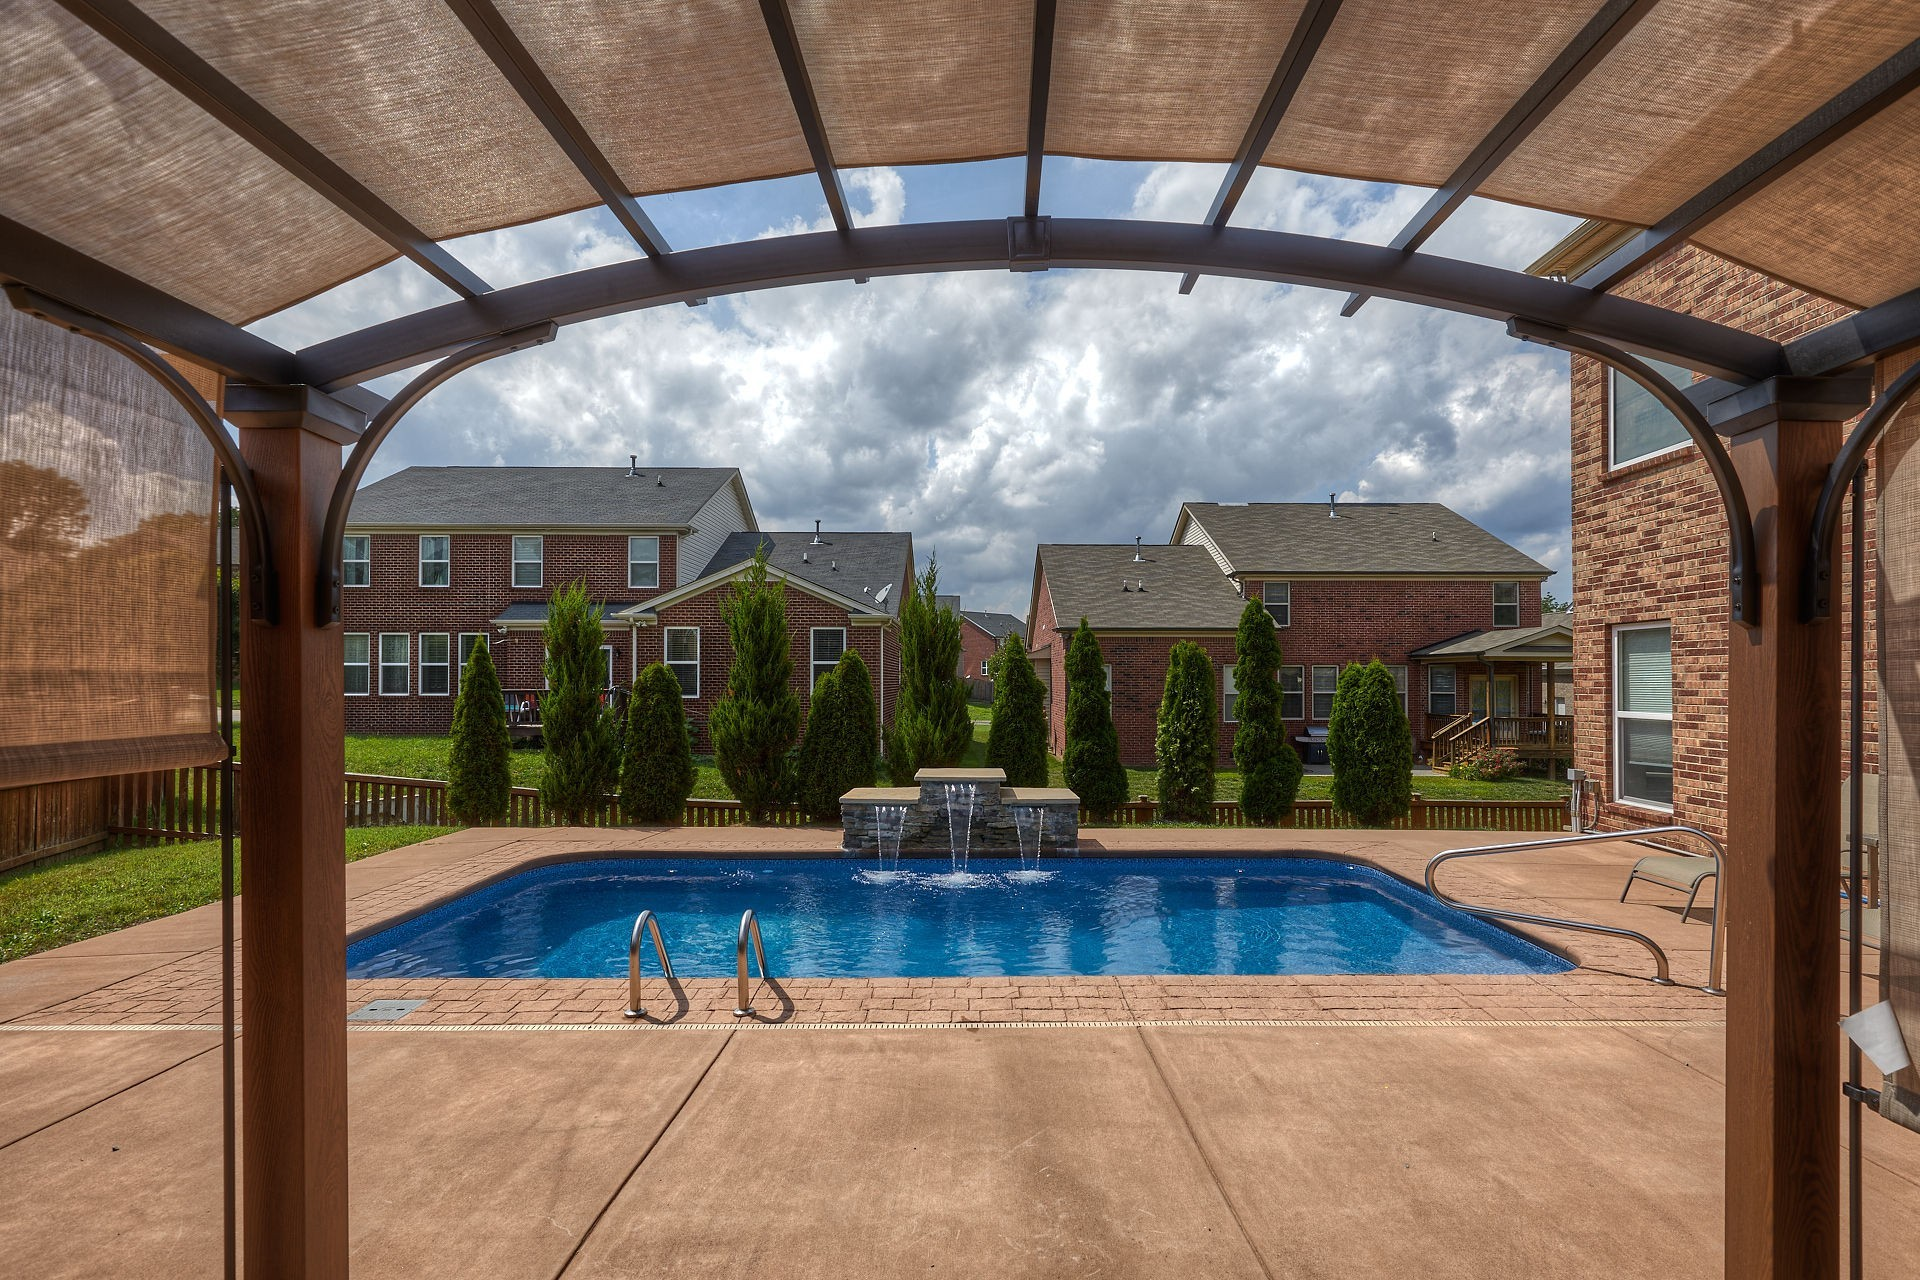 """This all brick 4,500 square foot home has it all. In ground pool, Hot tub, Even an underground shelter!! 5 bedroom 3.5 baths. Security system with many cameras throughout. NAHB """"Green Building"""" Certified. Pre-wired for sound, On Q Power home technologies with built-in USB outlets.  **See more info in photo descriptions"""